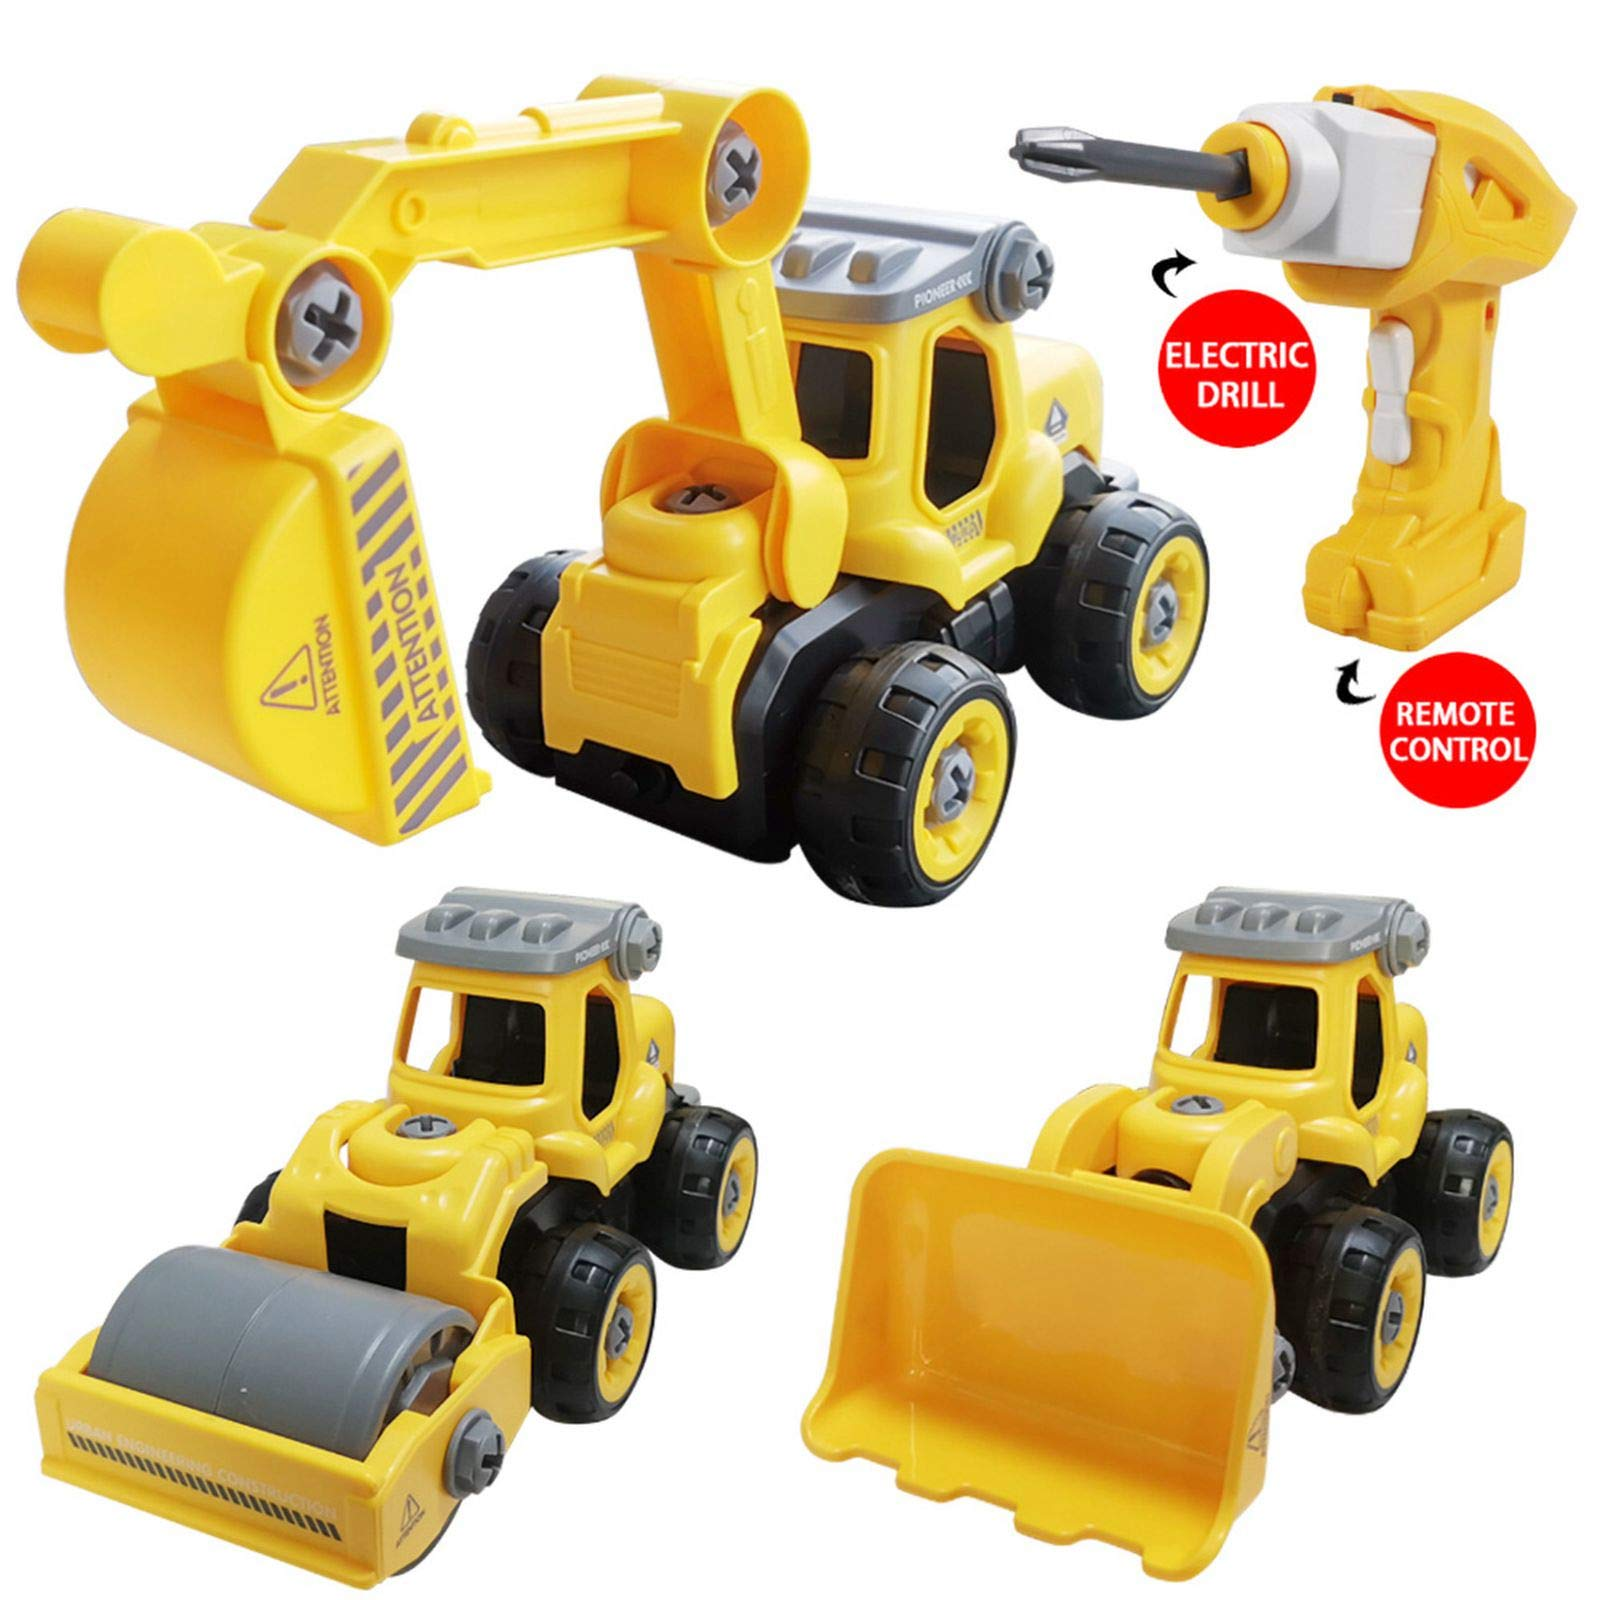 SZJJX 3 in 1 Construction Truck Take Apart Toys with Electric Drill